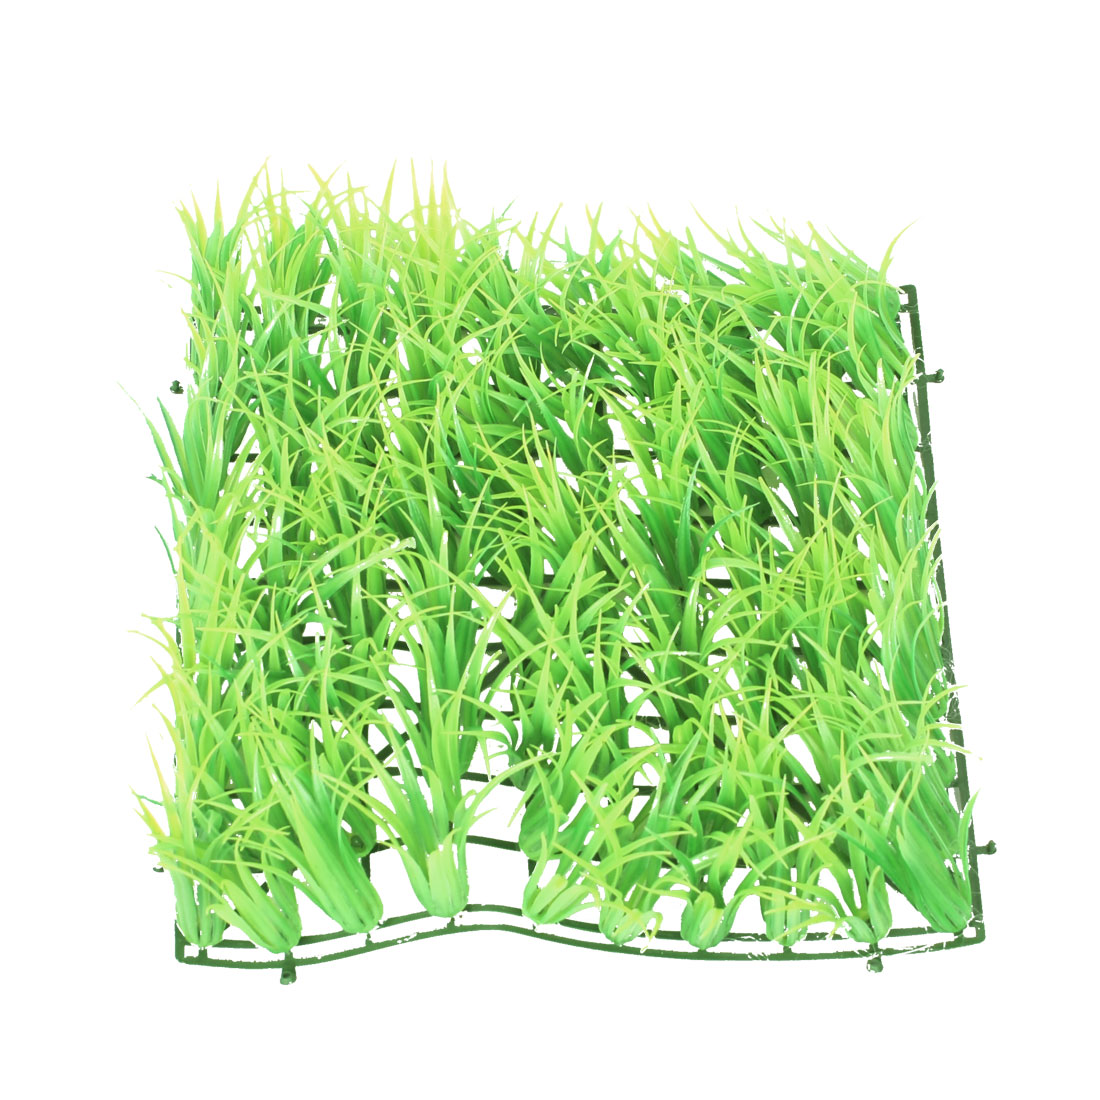 "Aquarium Underwater 9.4"" x 9.4"" x 2.4"" Artificial Plastic Grass Lawn Greenyellow"